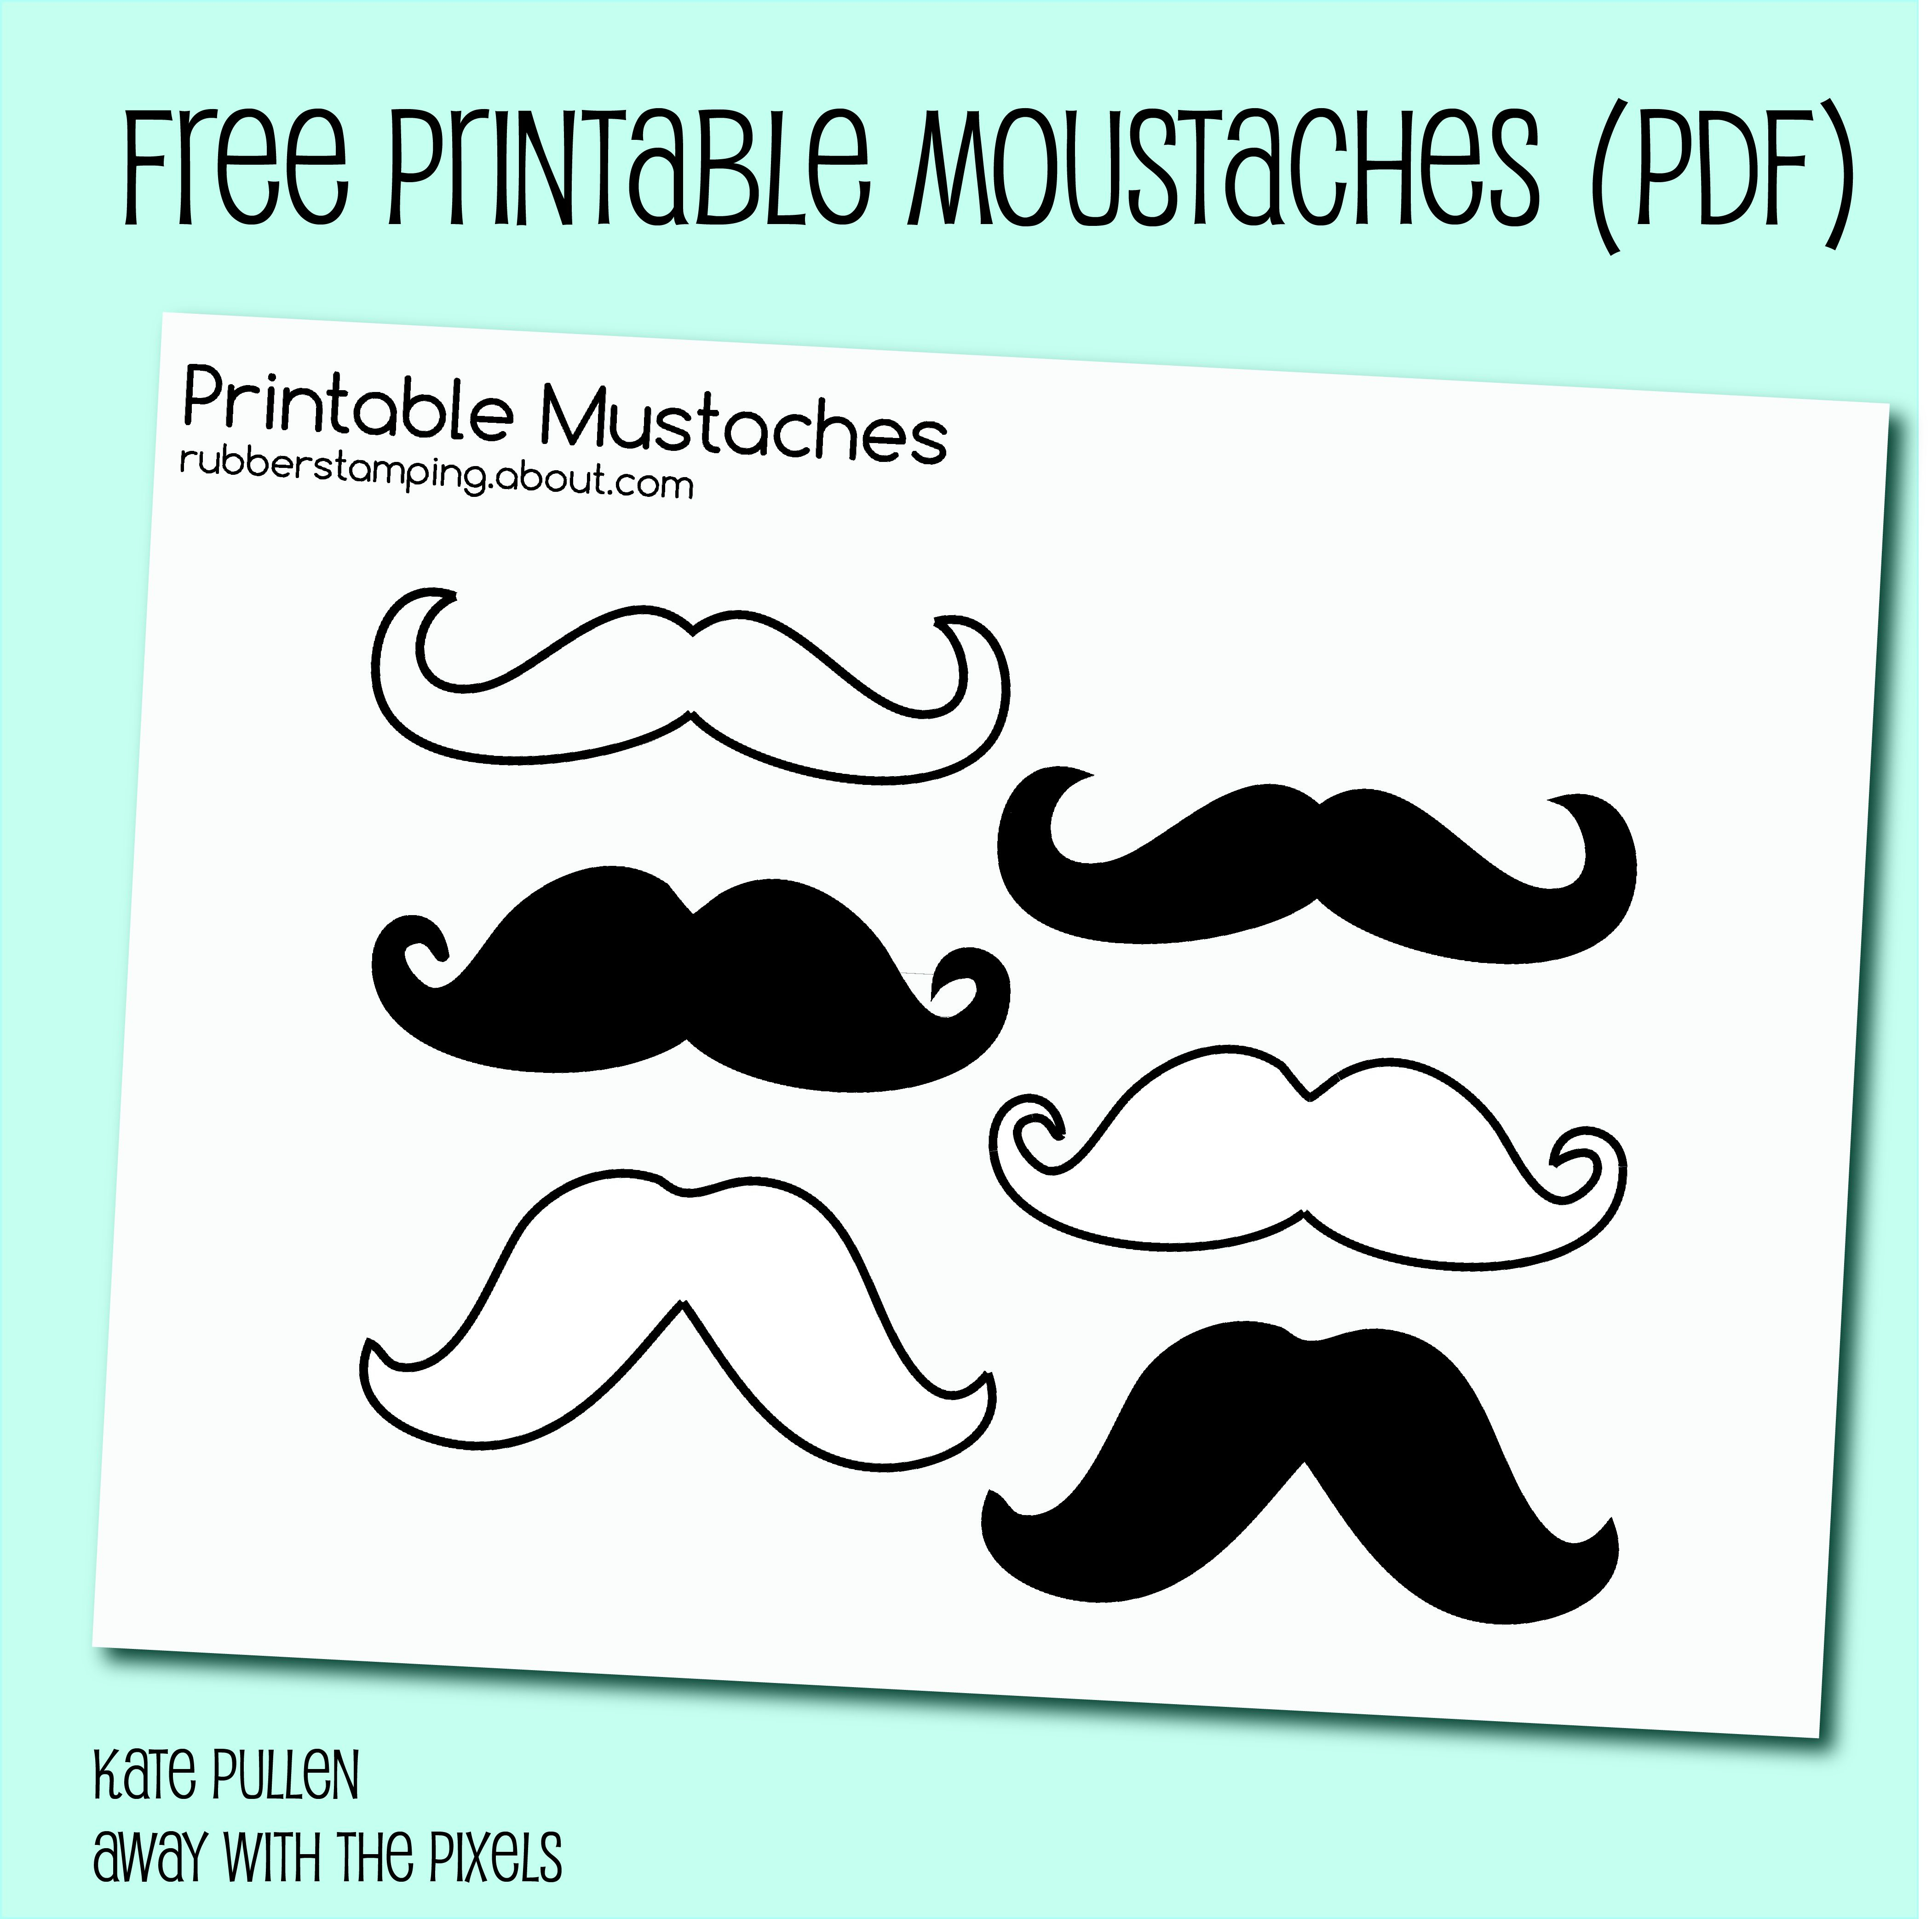 Free Printable Mustache Images - Free Printable Mustache